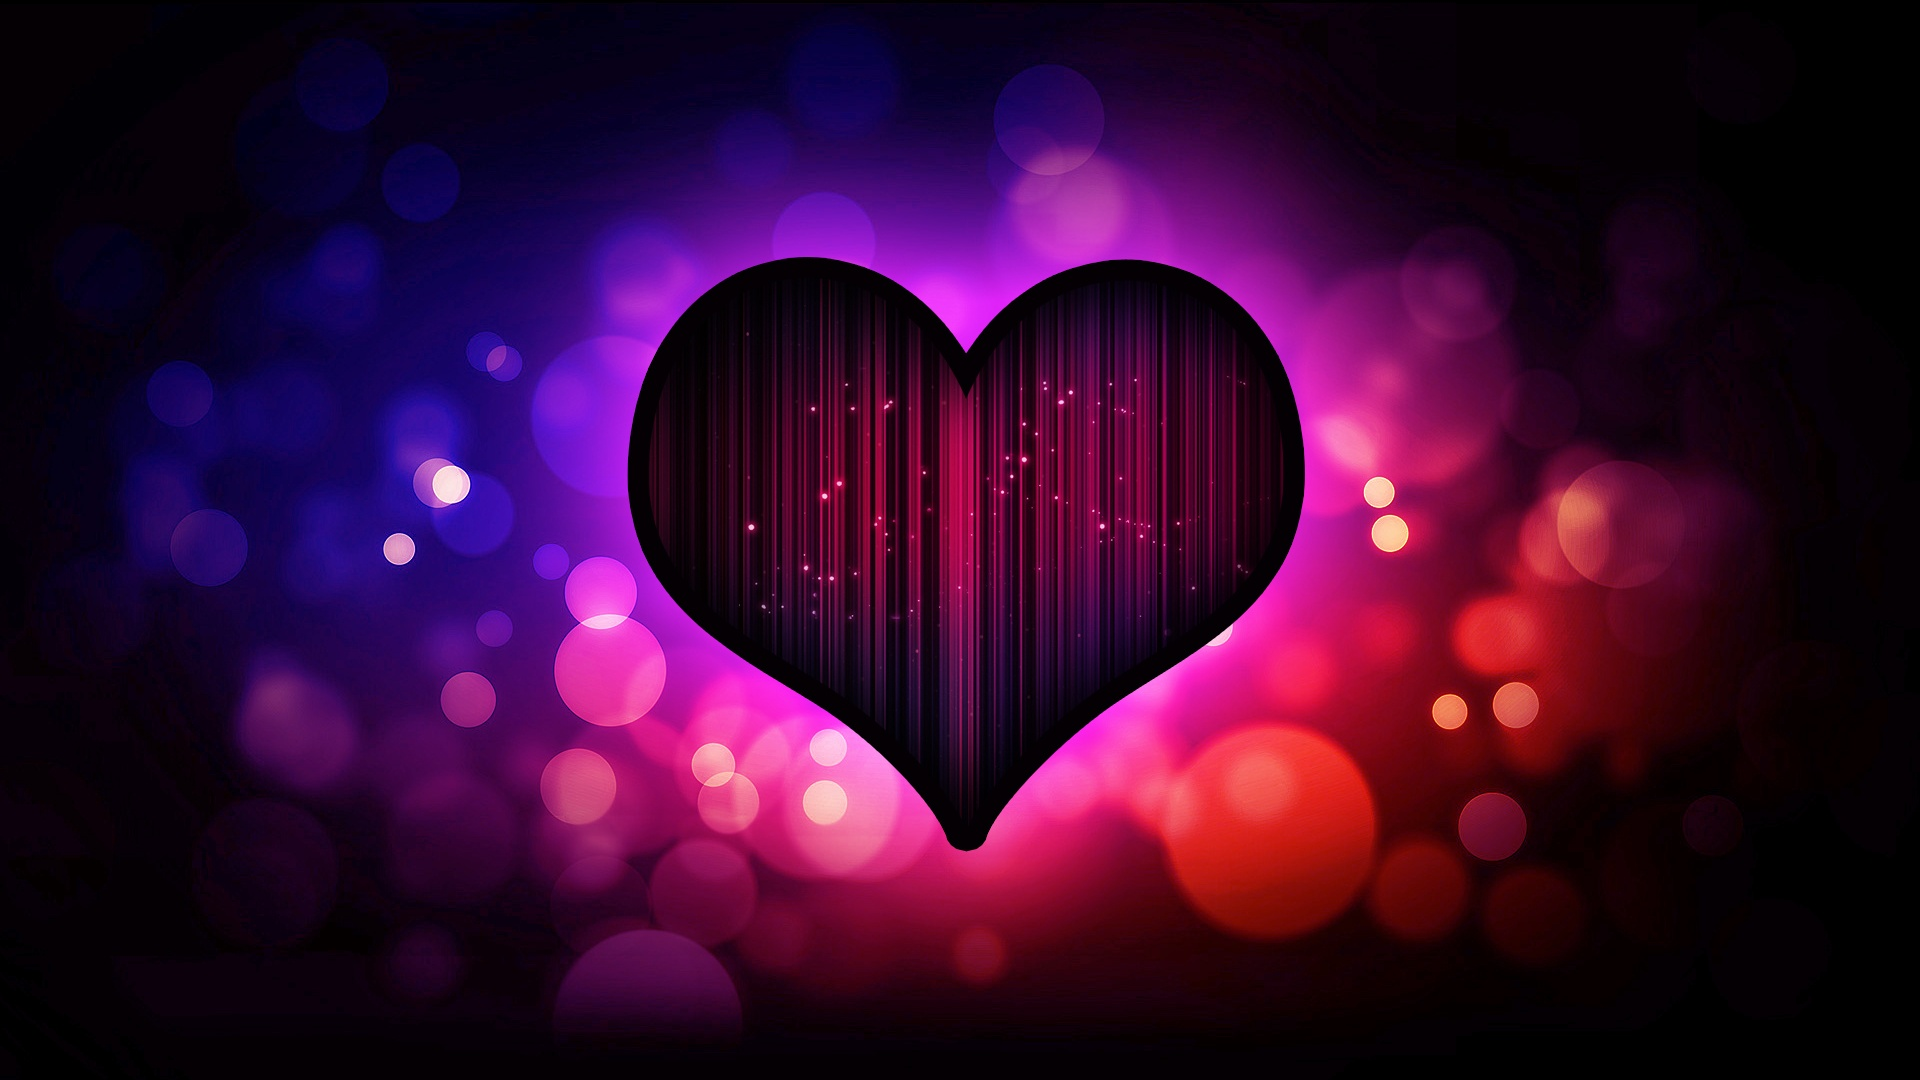 Abstract Love Heart Backgrounds